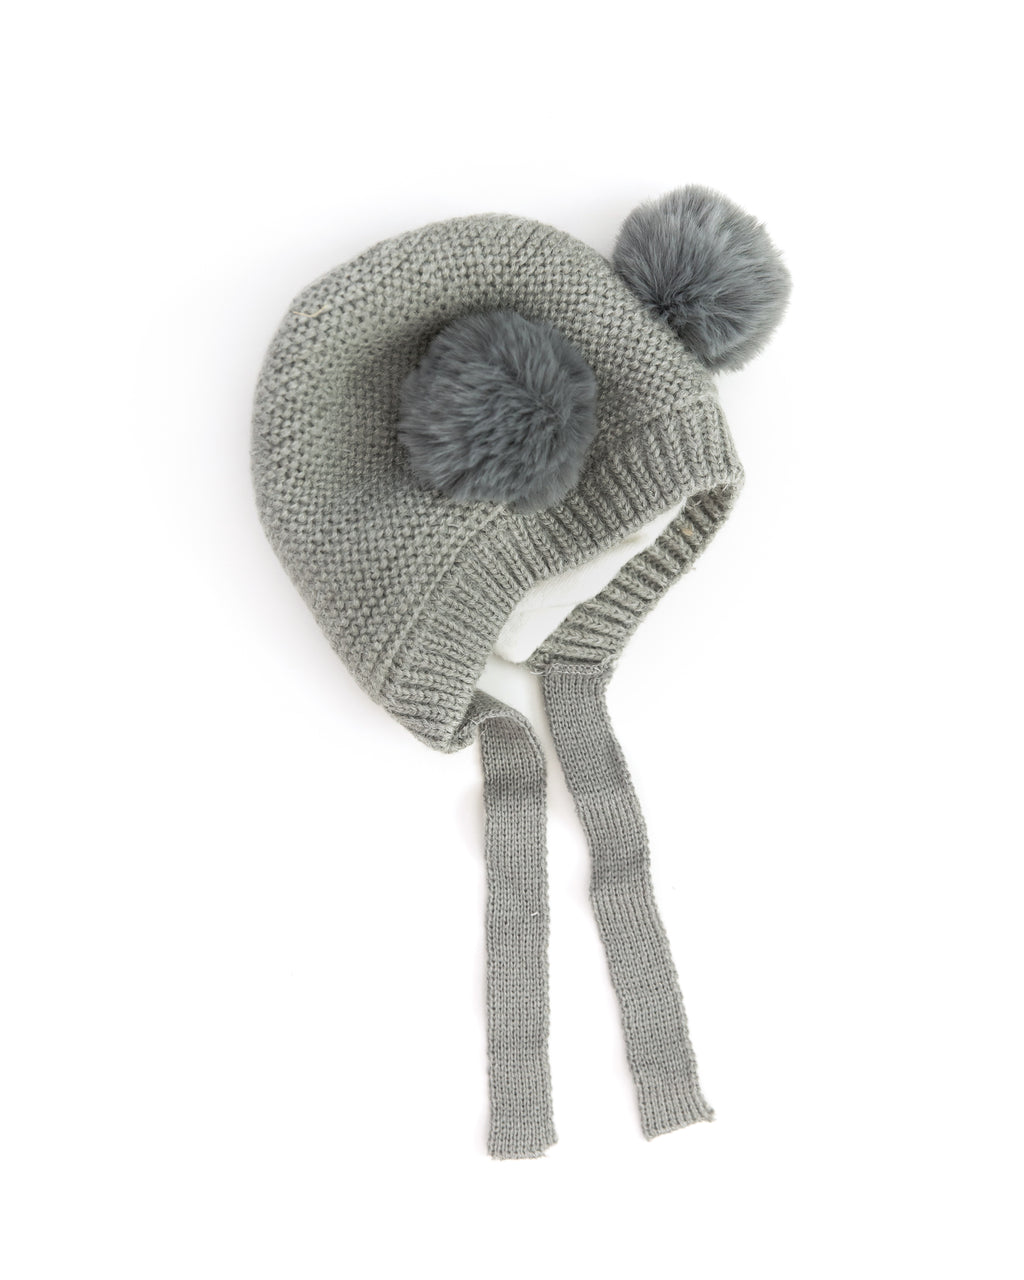 Teddy Knit Beanie in Gray - Reverie Threads